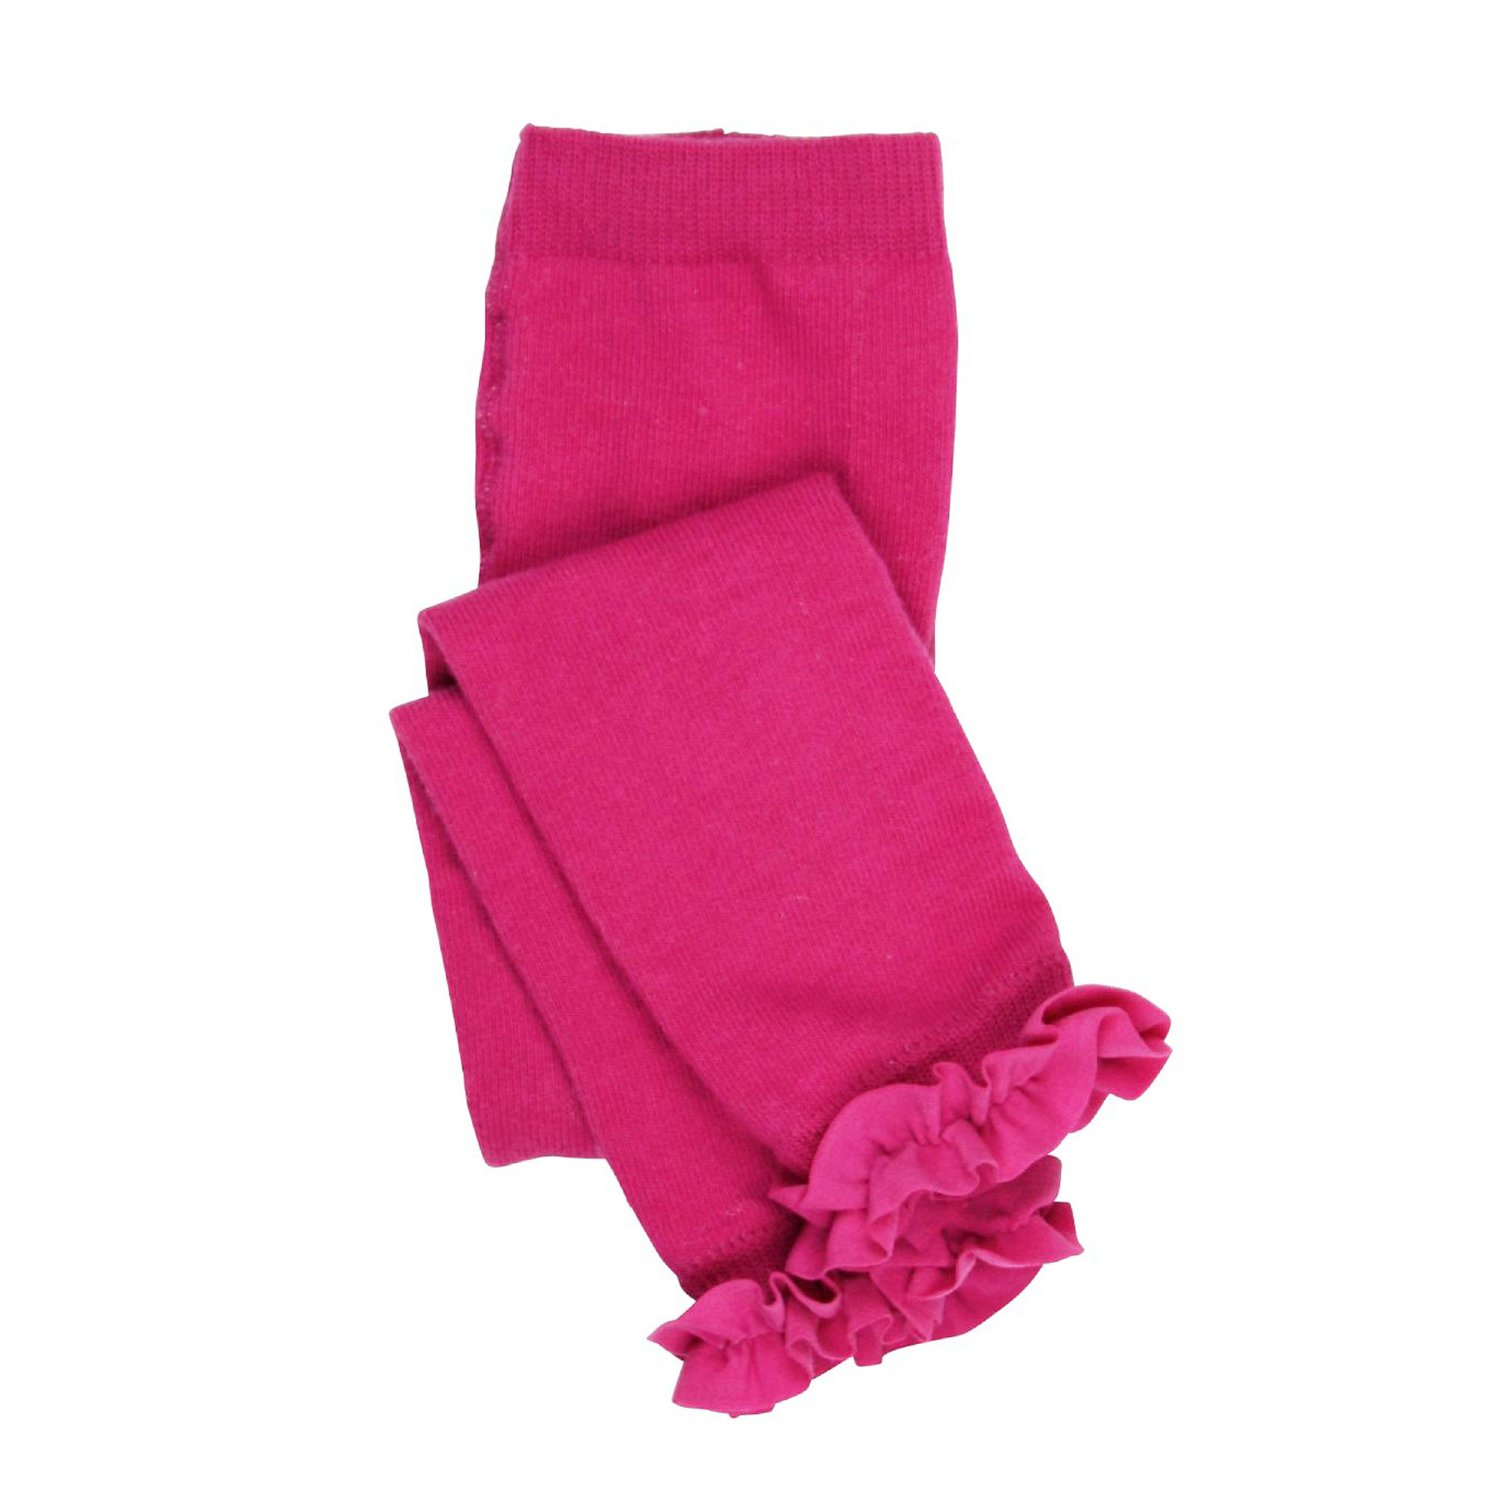 7f7a786bd0c2 Tights for Babies-Ruffle Butts-Fuchsia